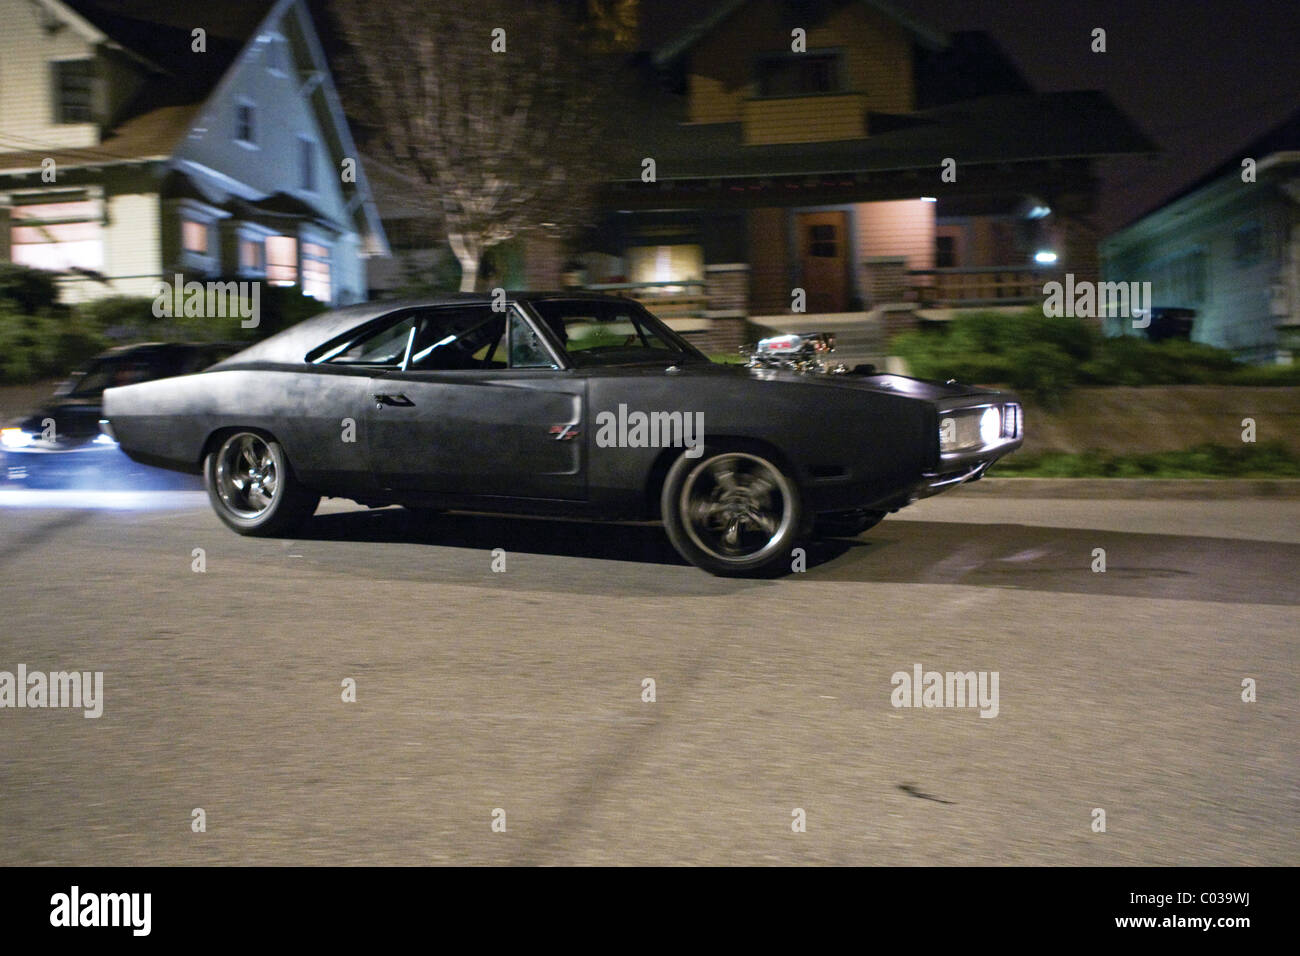 1970 dodge charger fast furious the fast and the furious 4 2009 stock photo royalty free. Black Bedroom Furniture Sets. Home Design Ideas